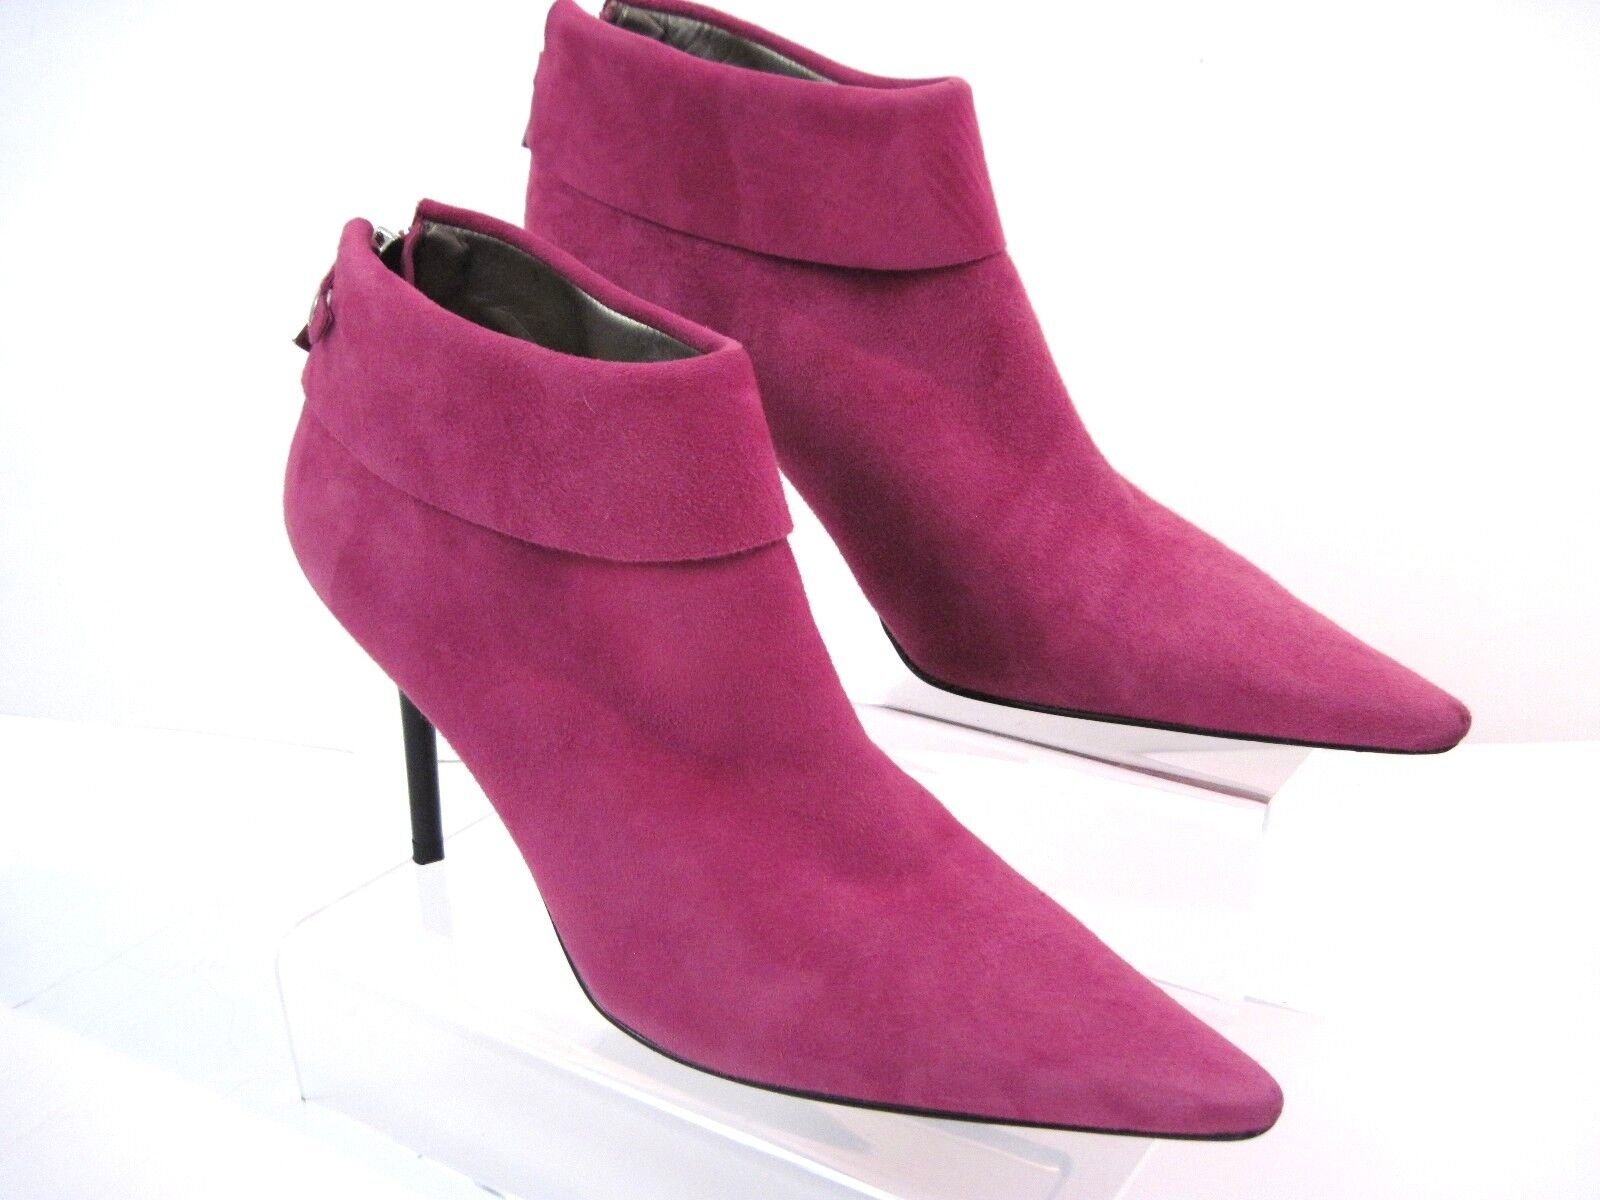 BCBGirls Pink Suede Sexy Litchy Ankle Booties Limited Edition Size 5 1 2 B